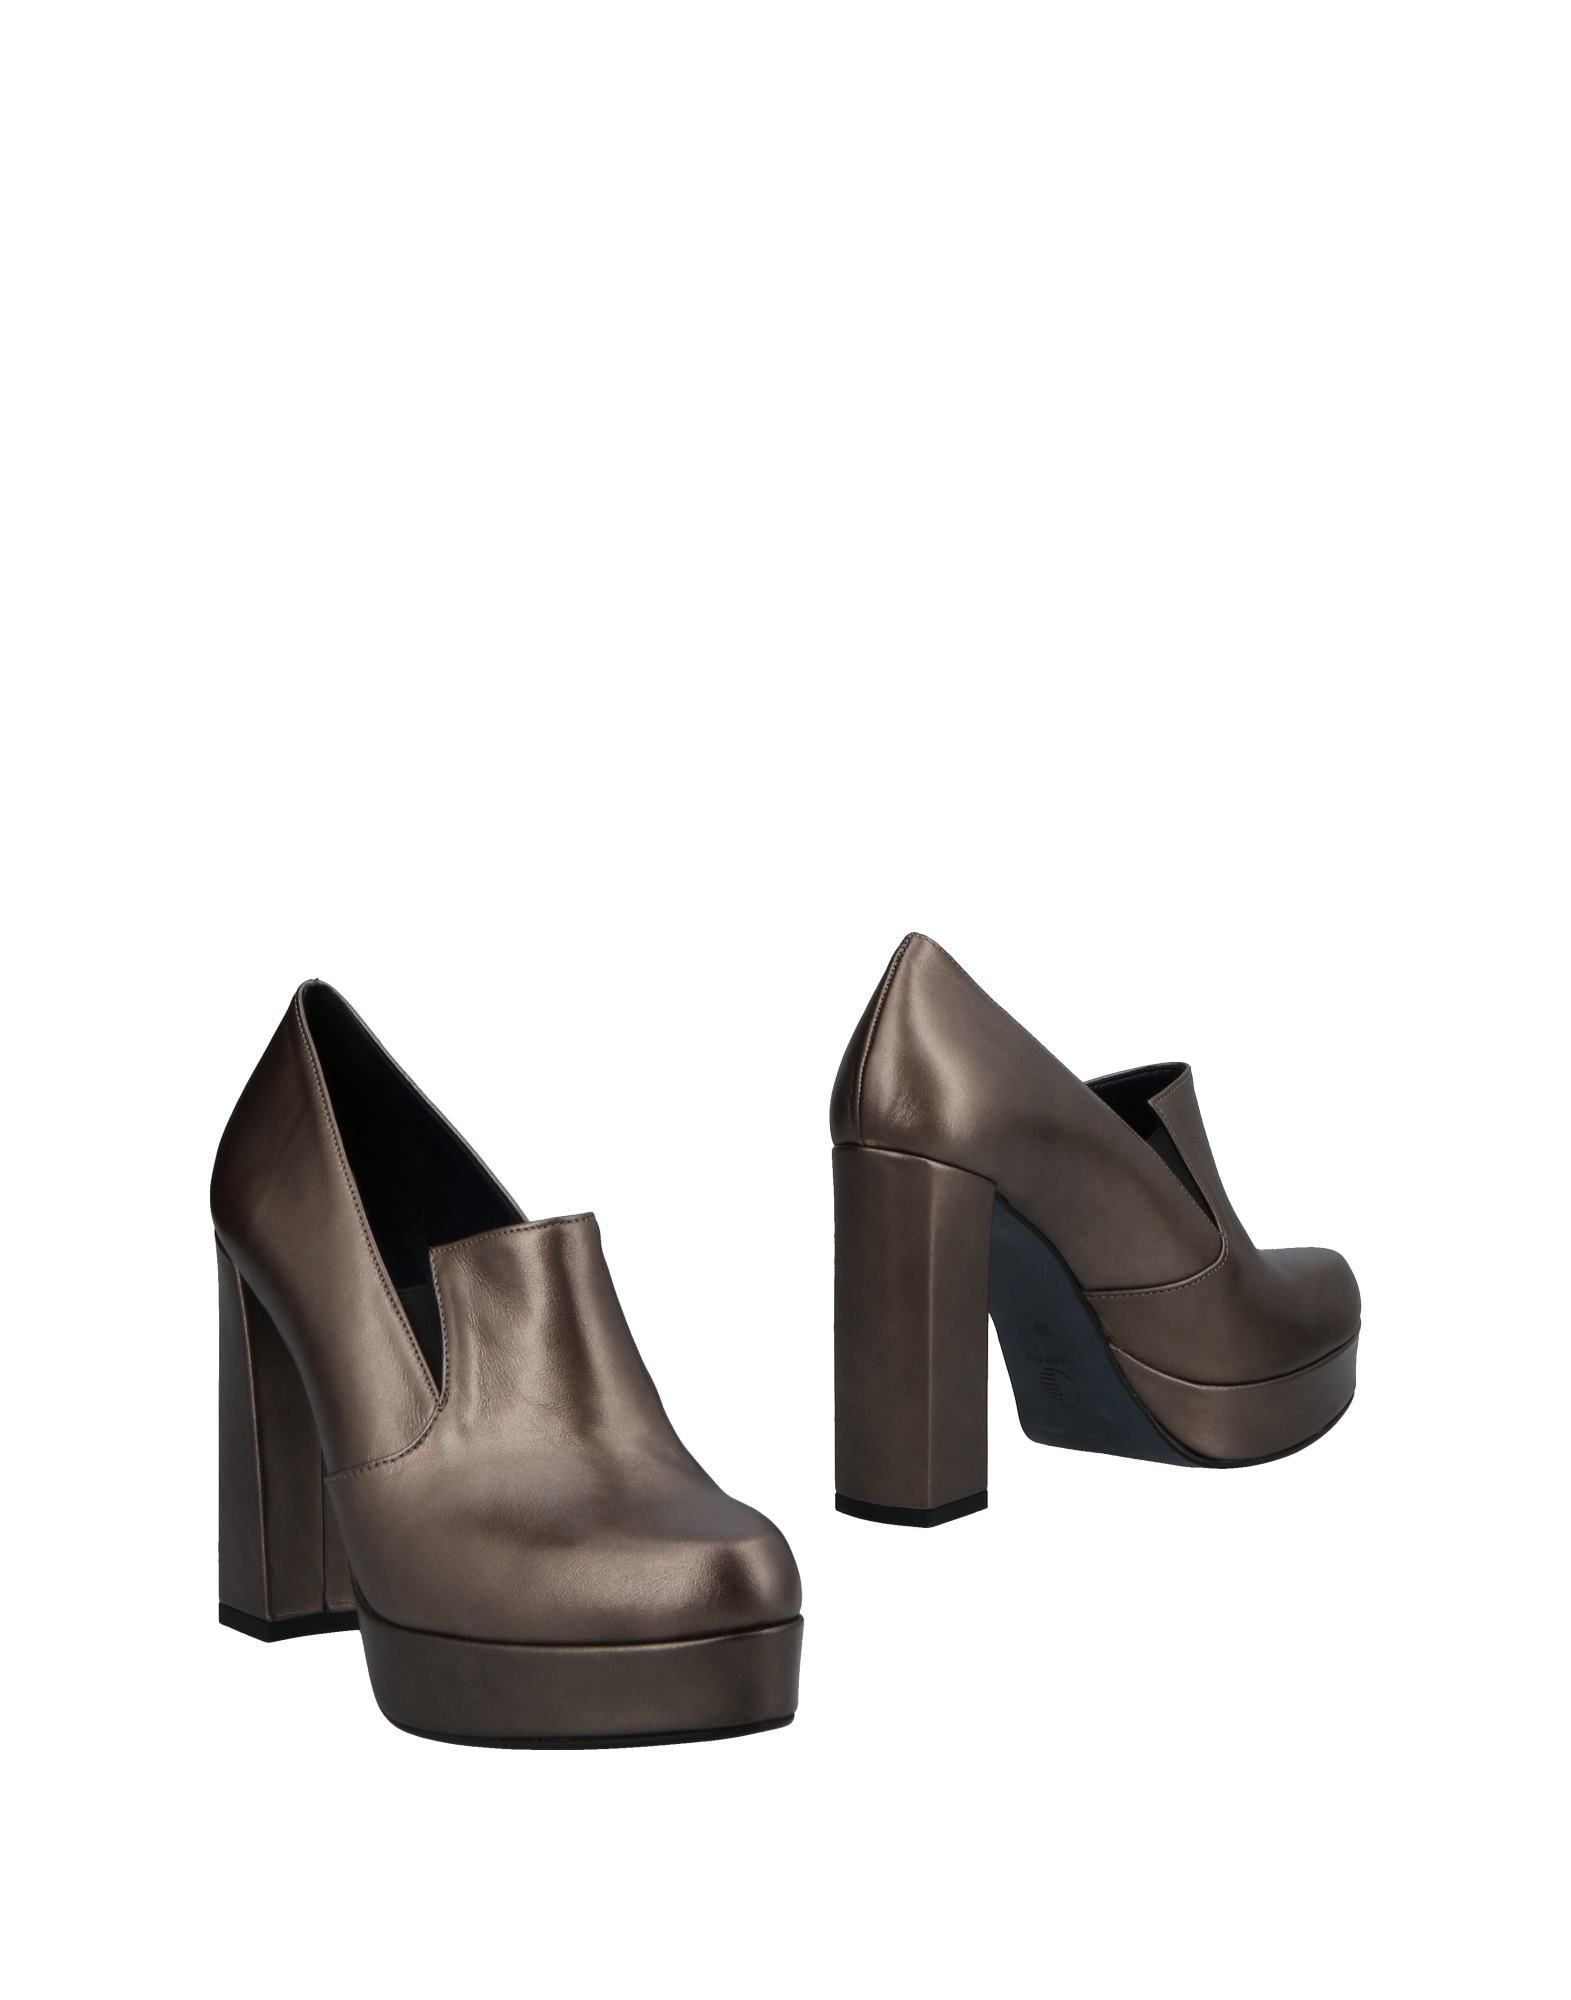 ANTEPRIMA Ankle Boot in Lead